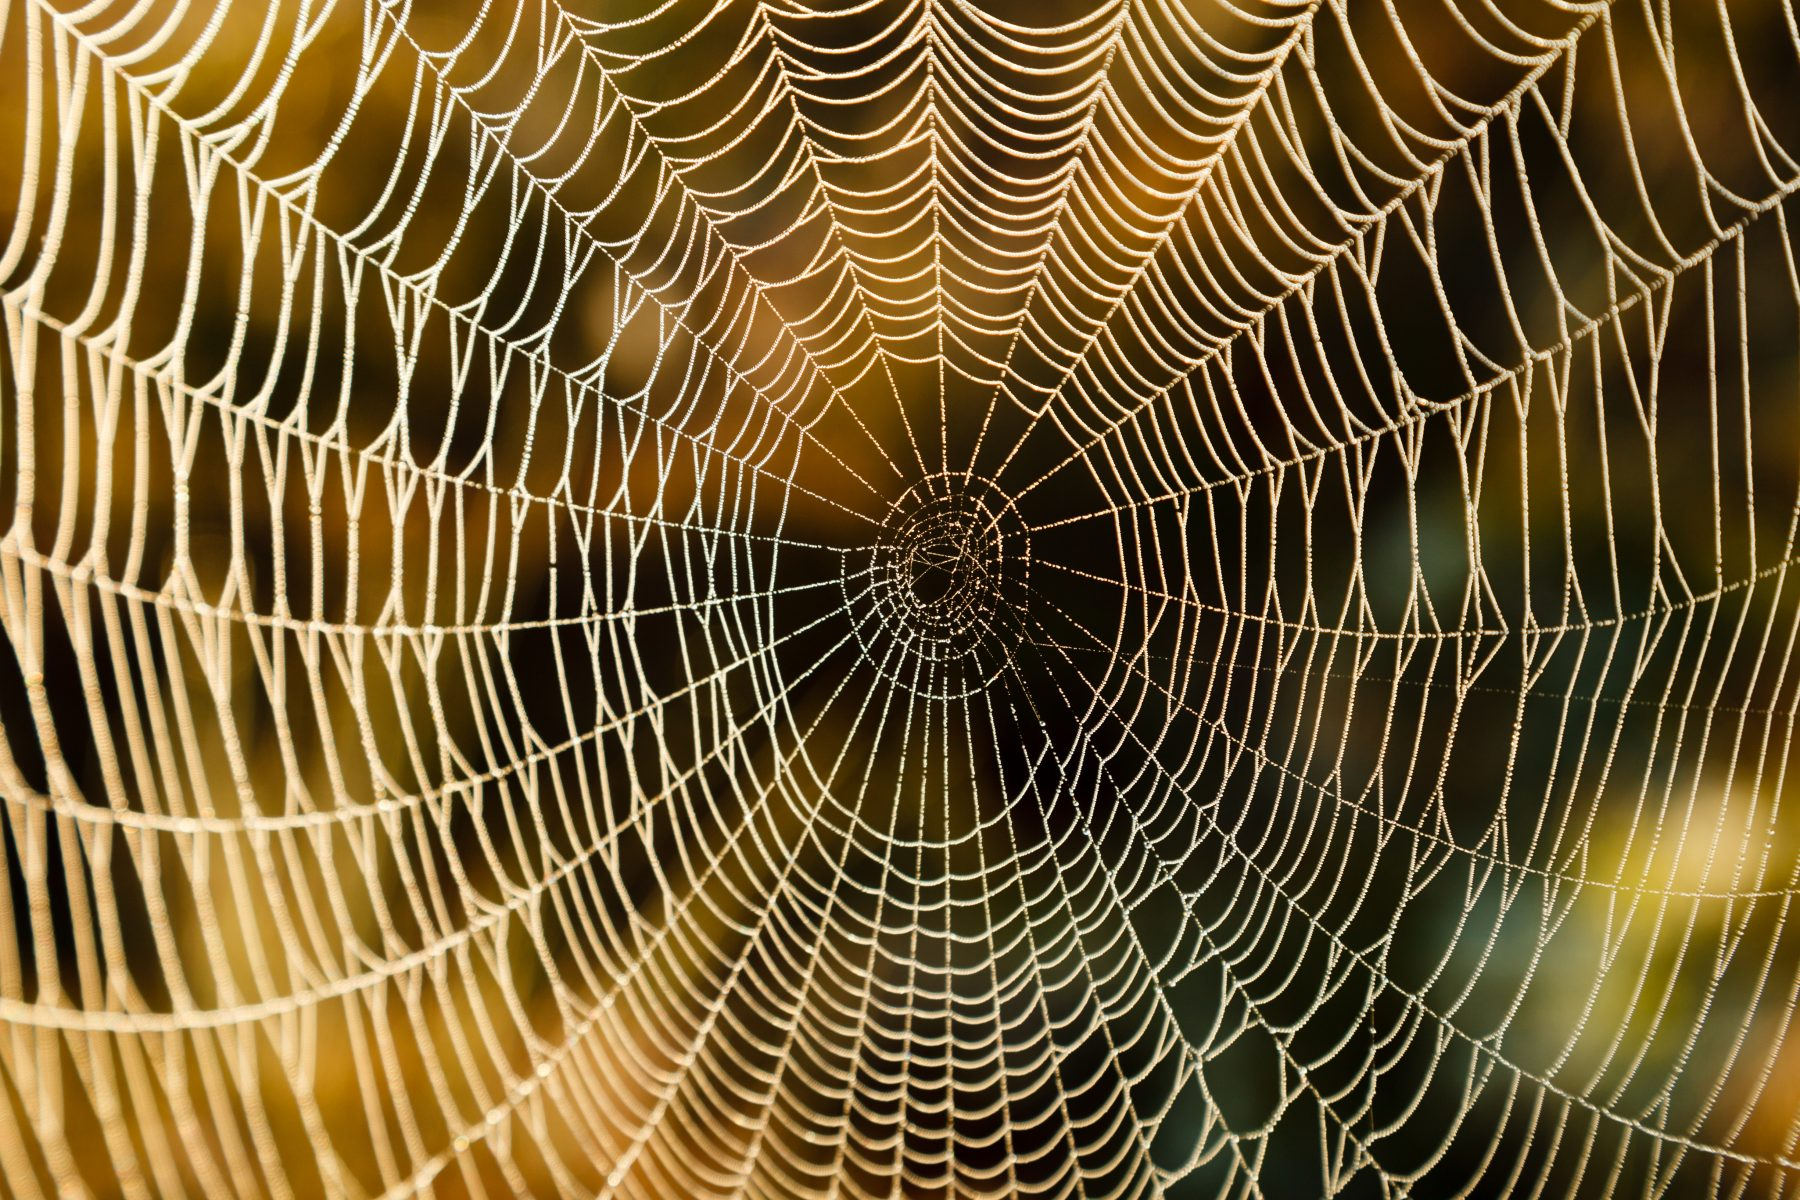 Spider Web representing Virality of social Media